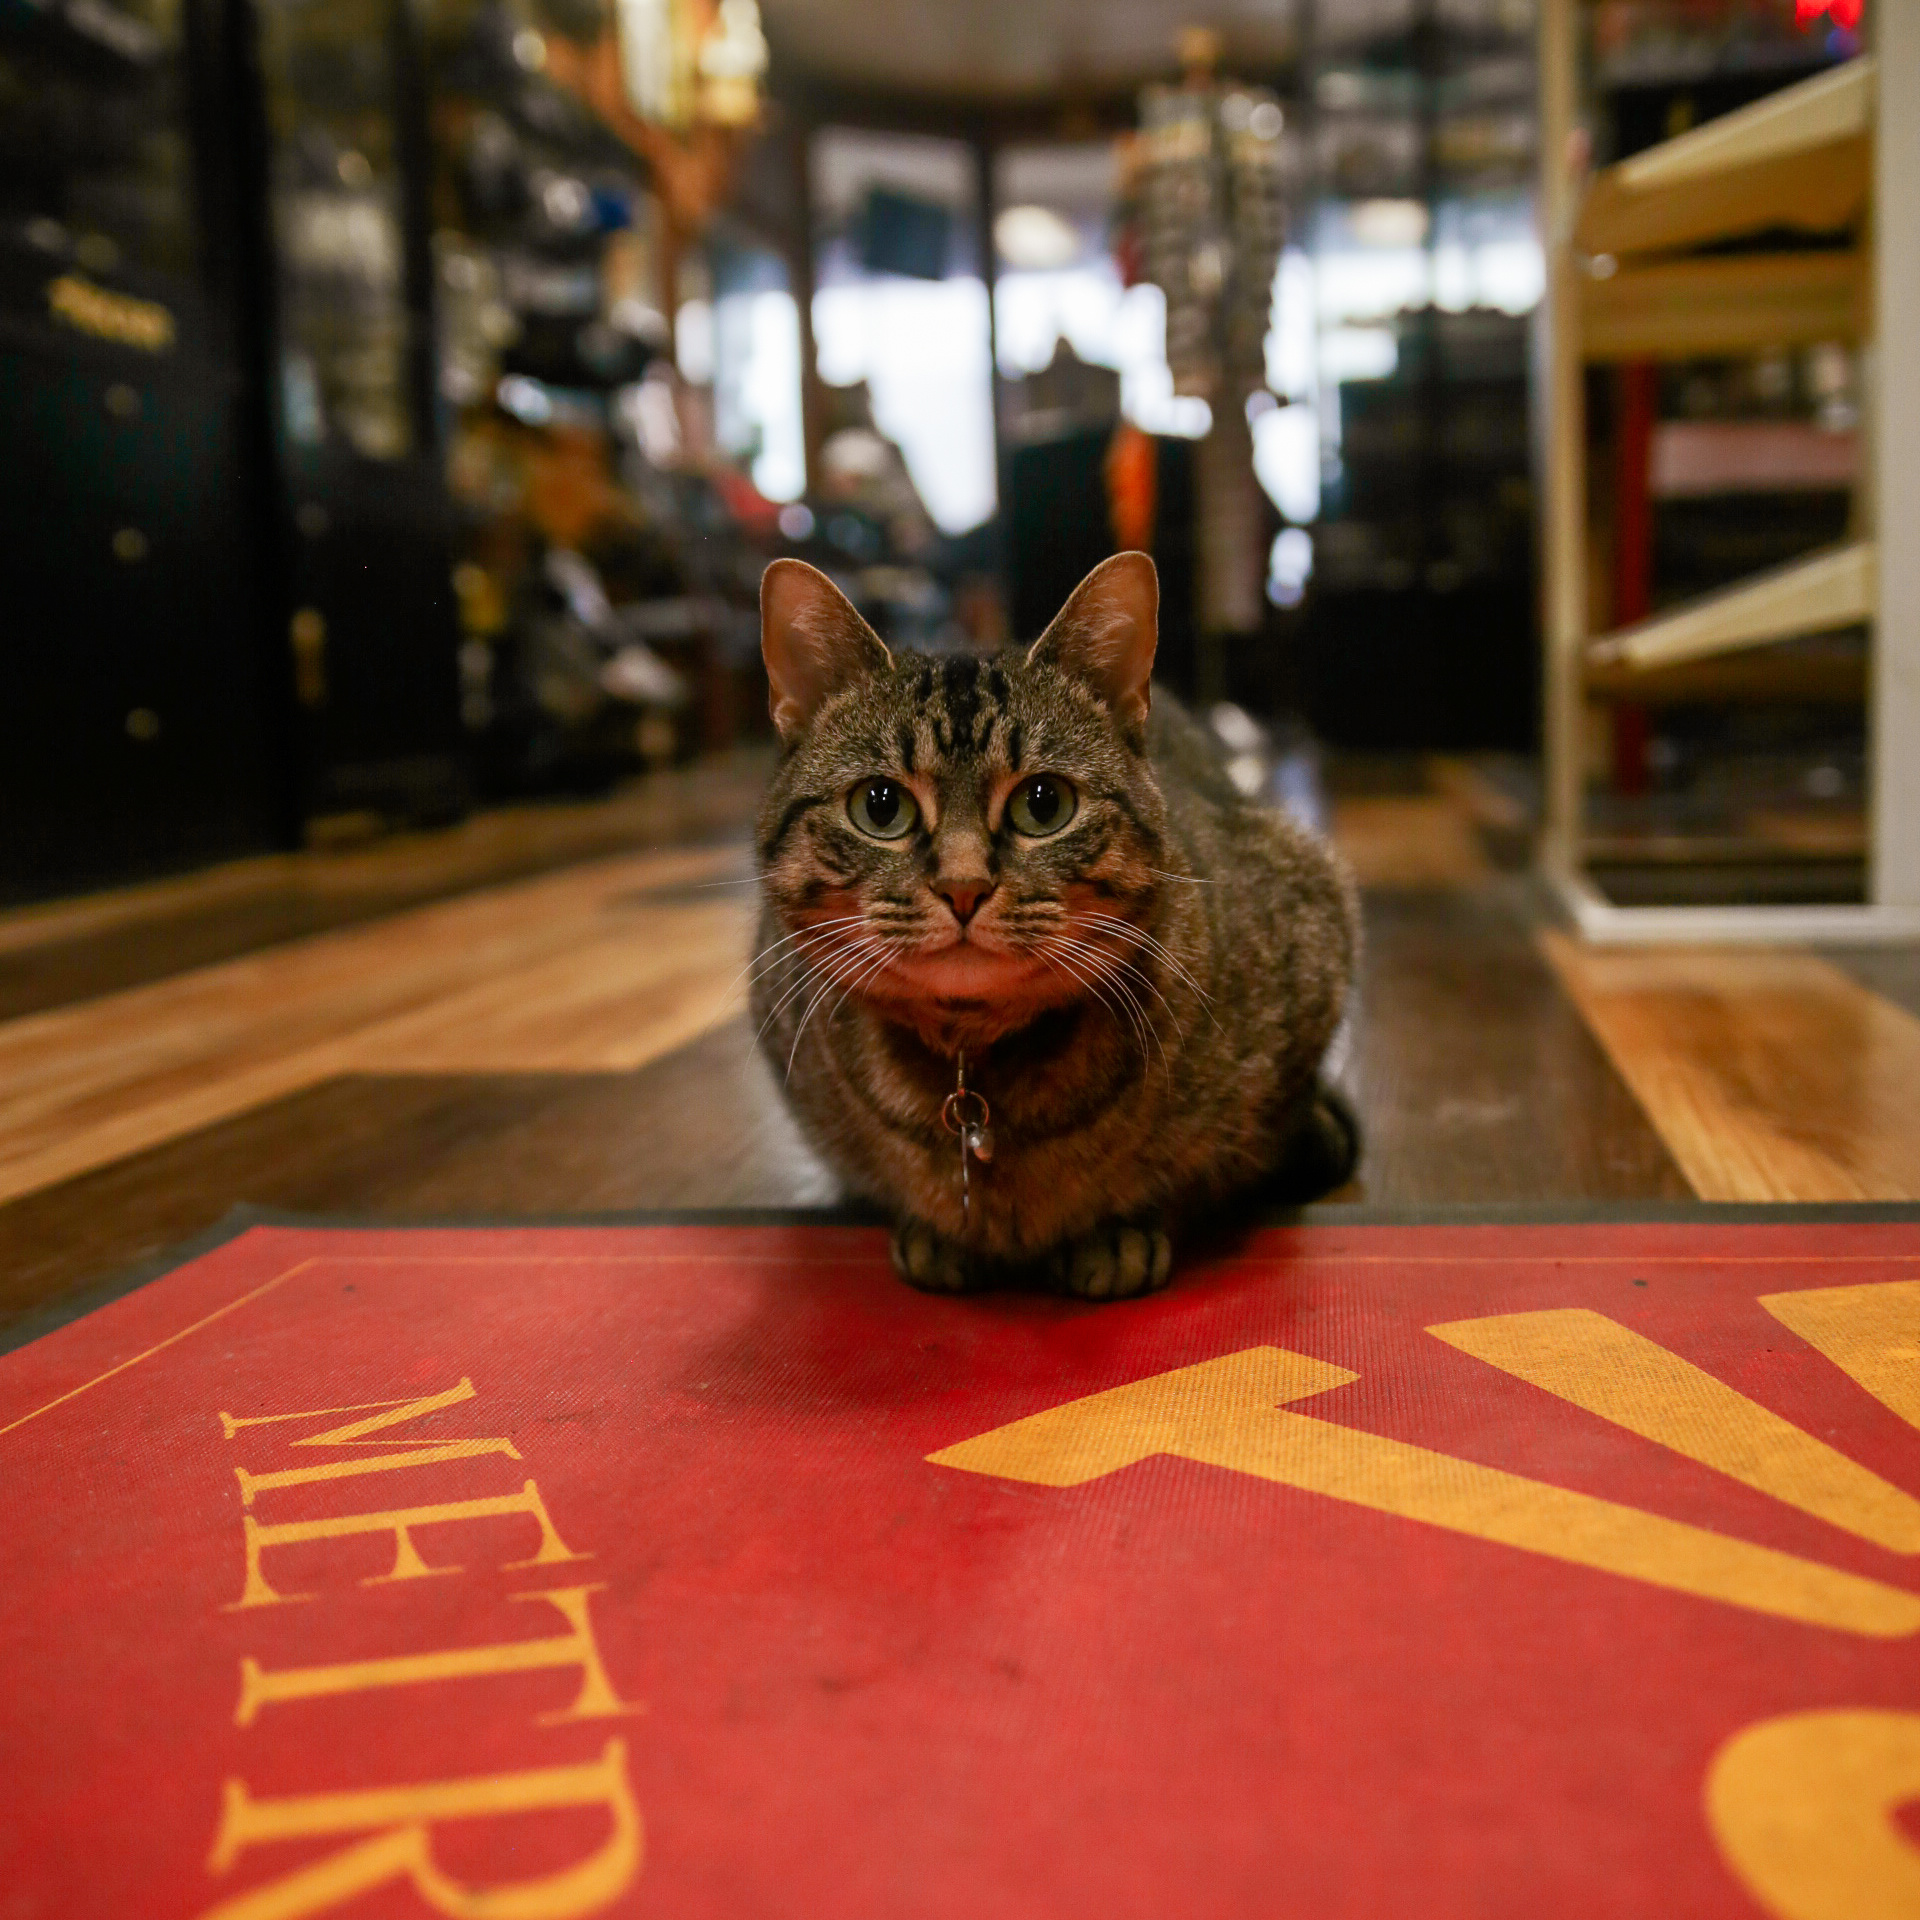 Minerva, the Shop Cat